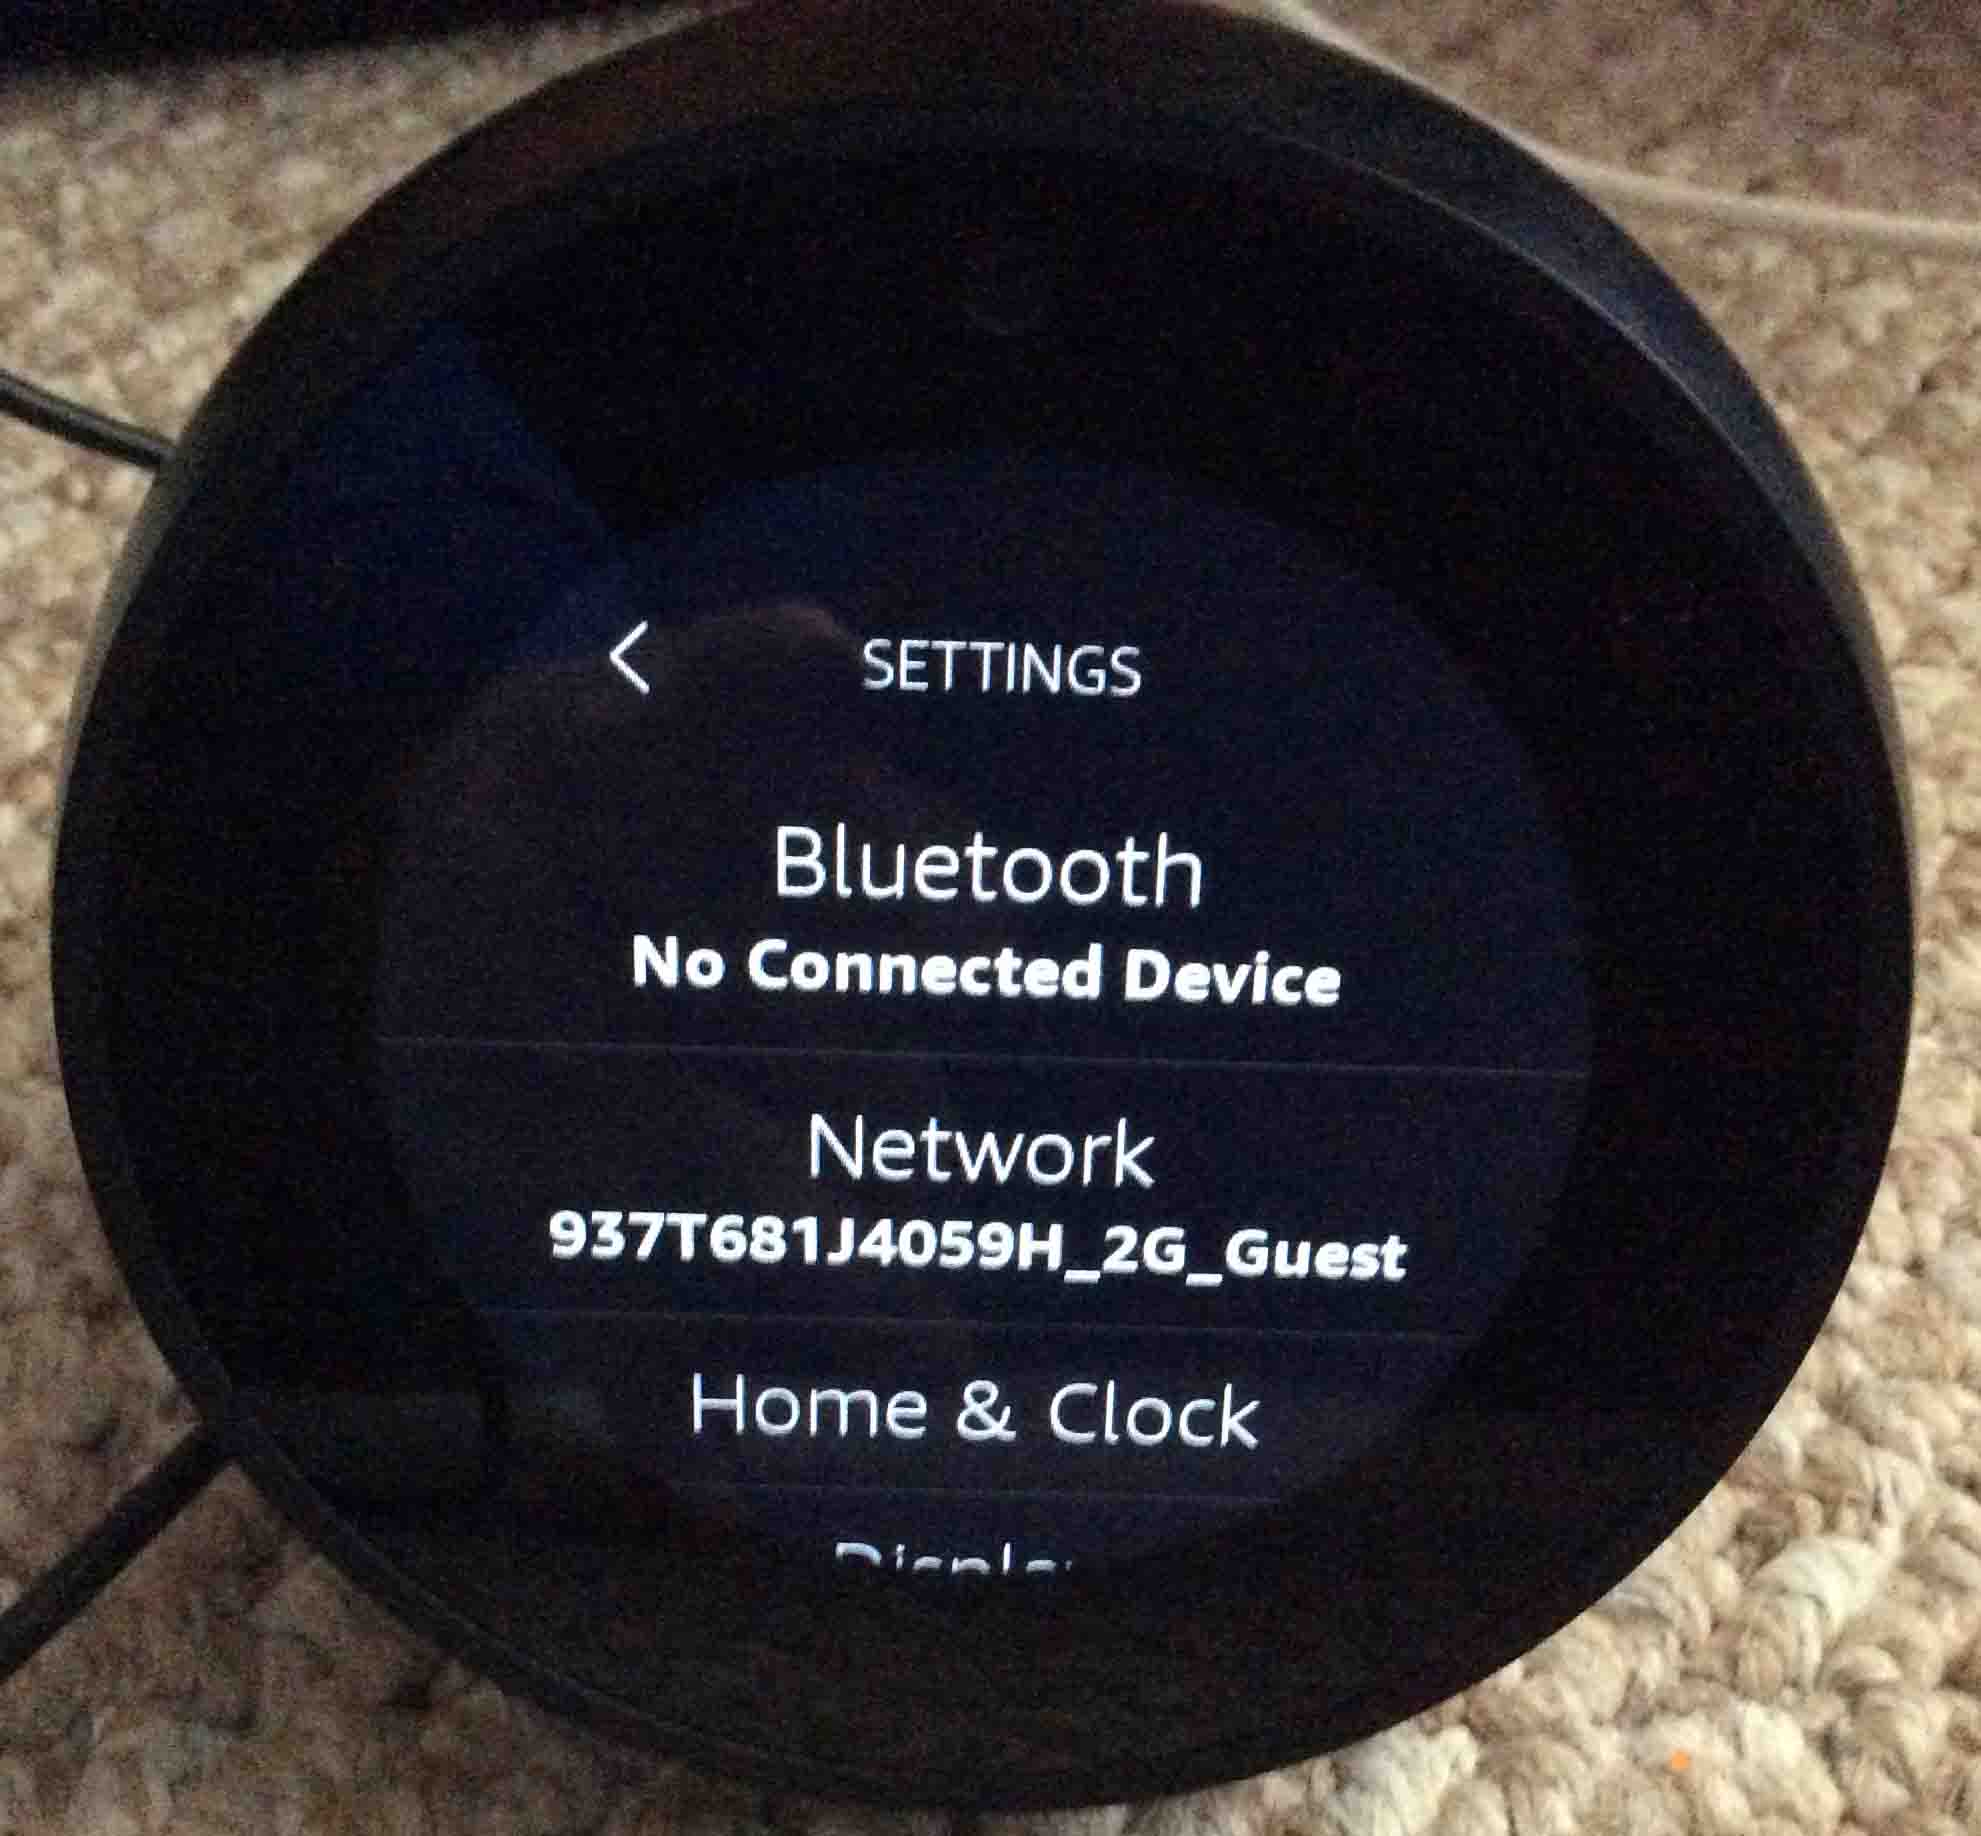 how to do a firmware update on amazon echo